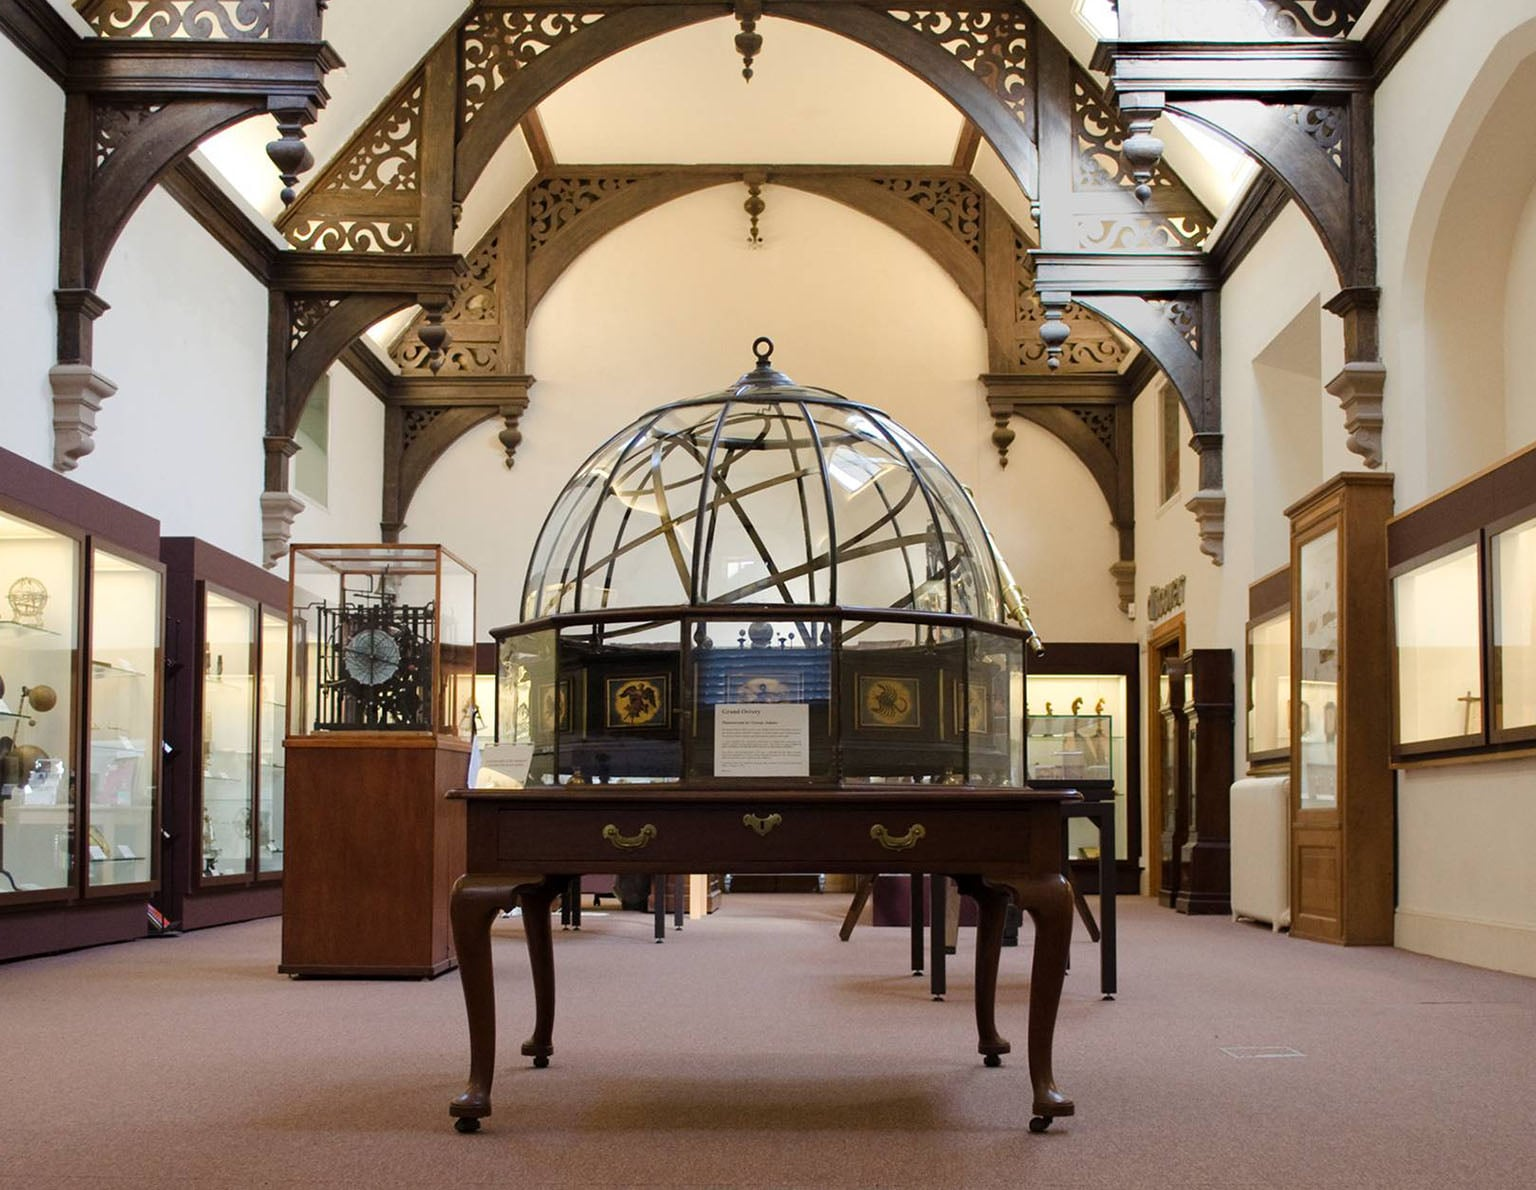 6. Whipple Museum of the History of Science, Cambridgeshire - Free to all